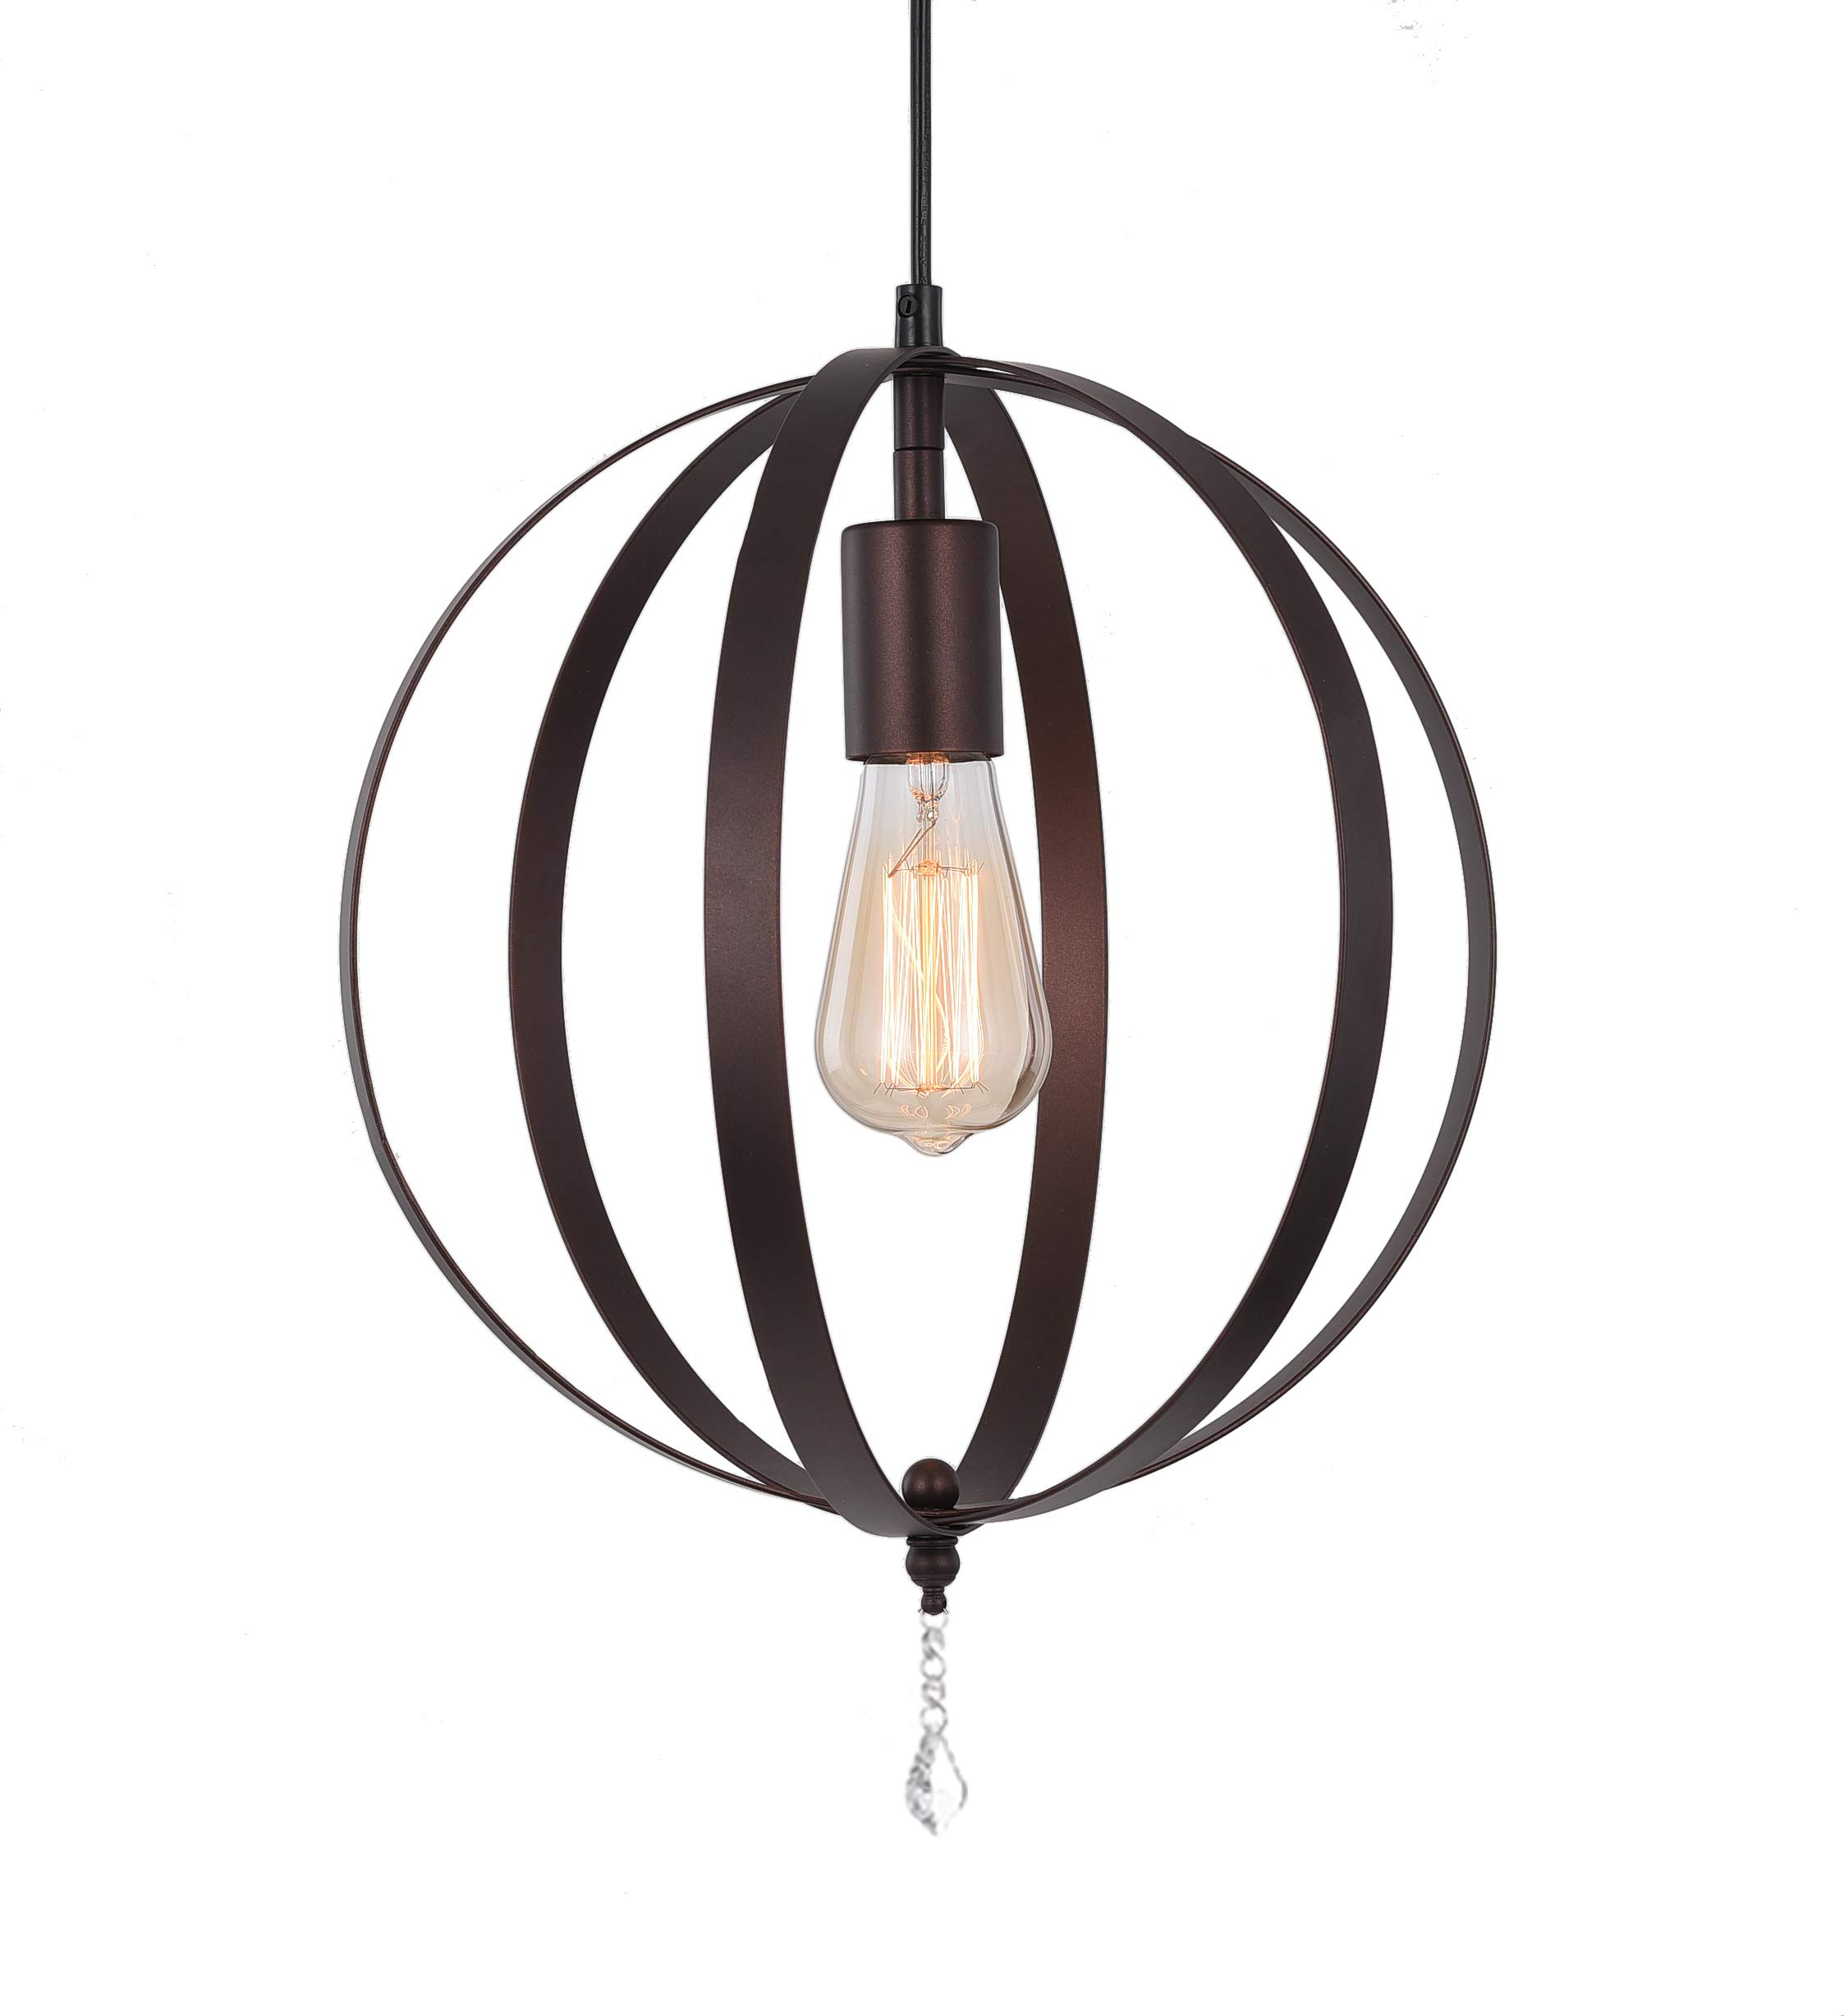 Industrial Vintage Metal Pendant Light, Hebolen Globe Hanging Light Fixture with Plug in and On/Off Switch for Kitchen Island Bedroom Hallway Dining Room Table Farmhouse(Coffee Gold)